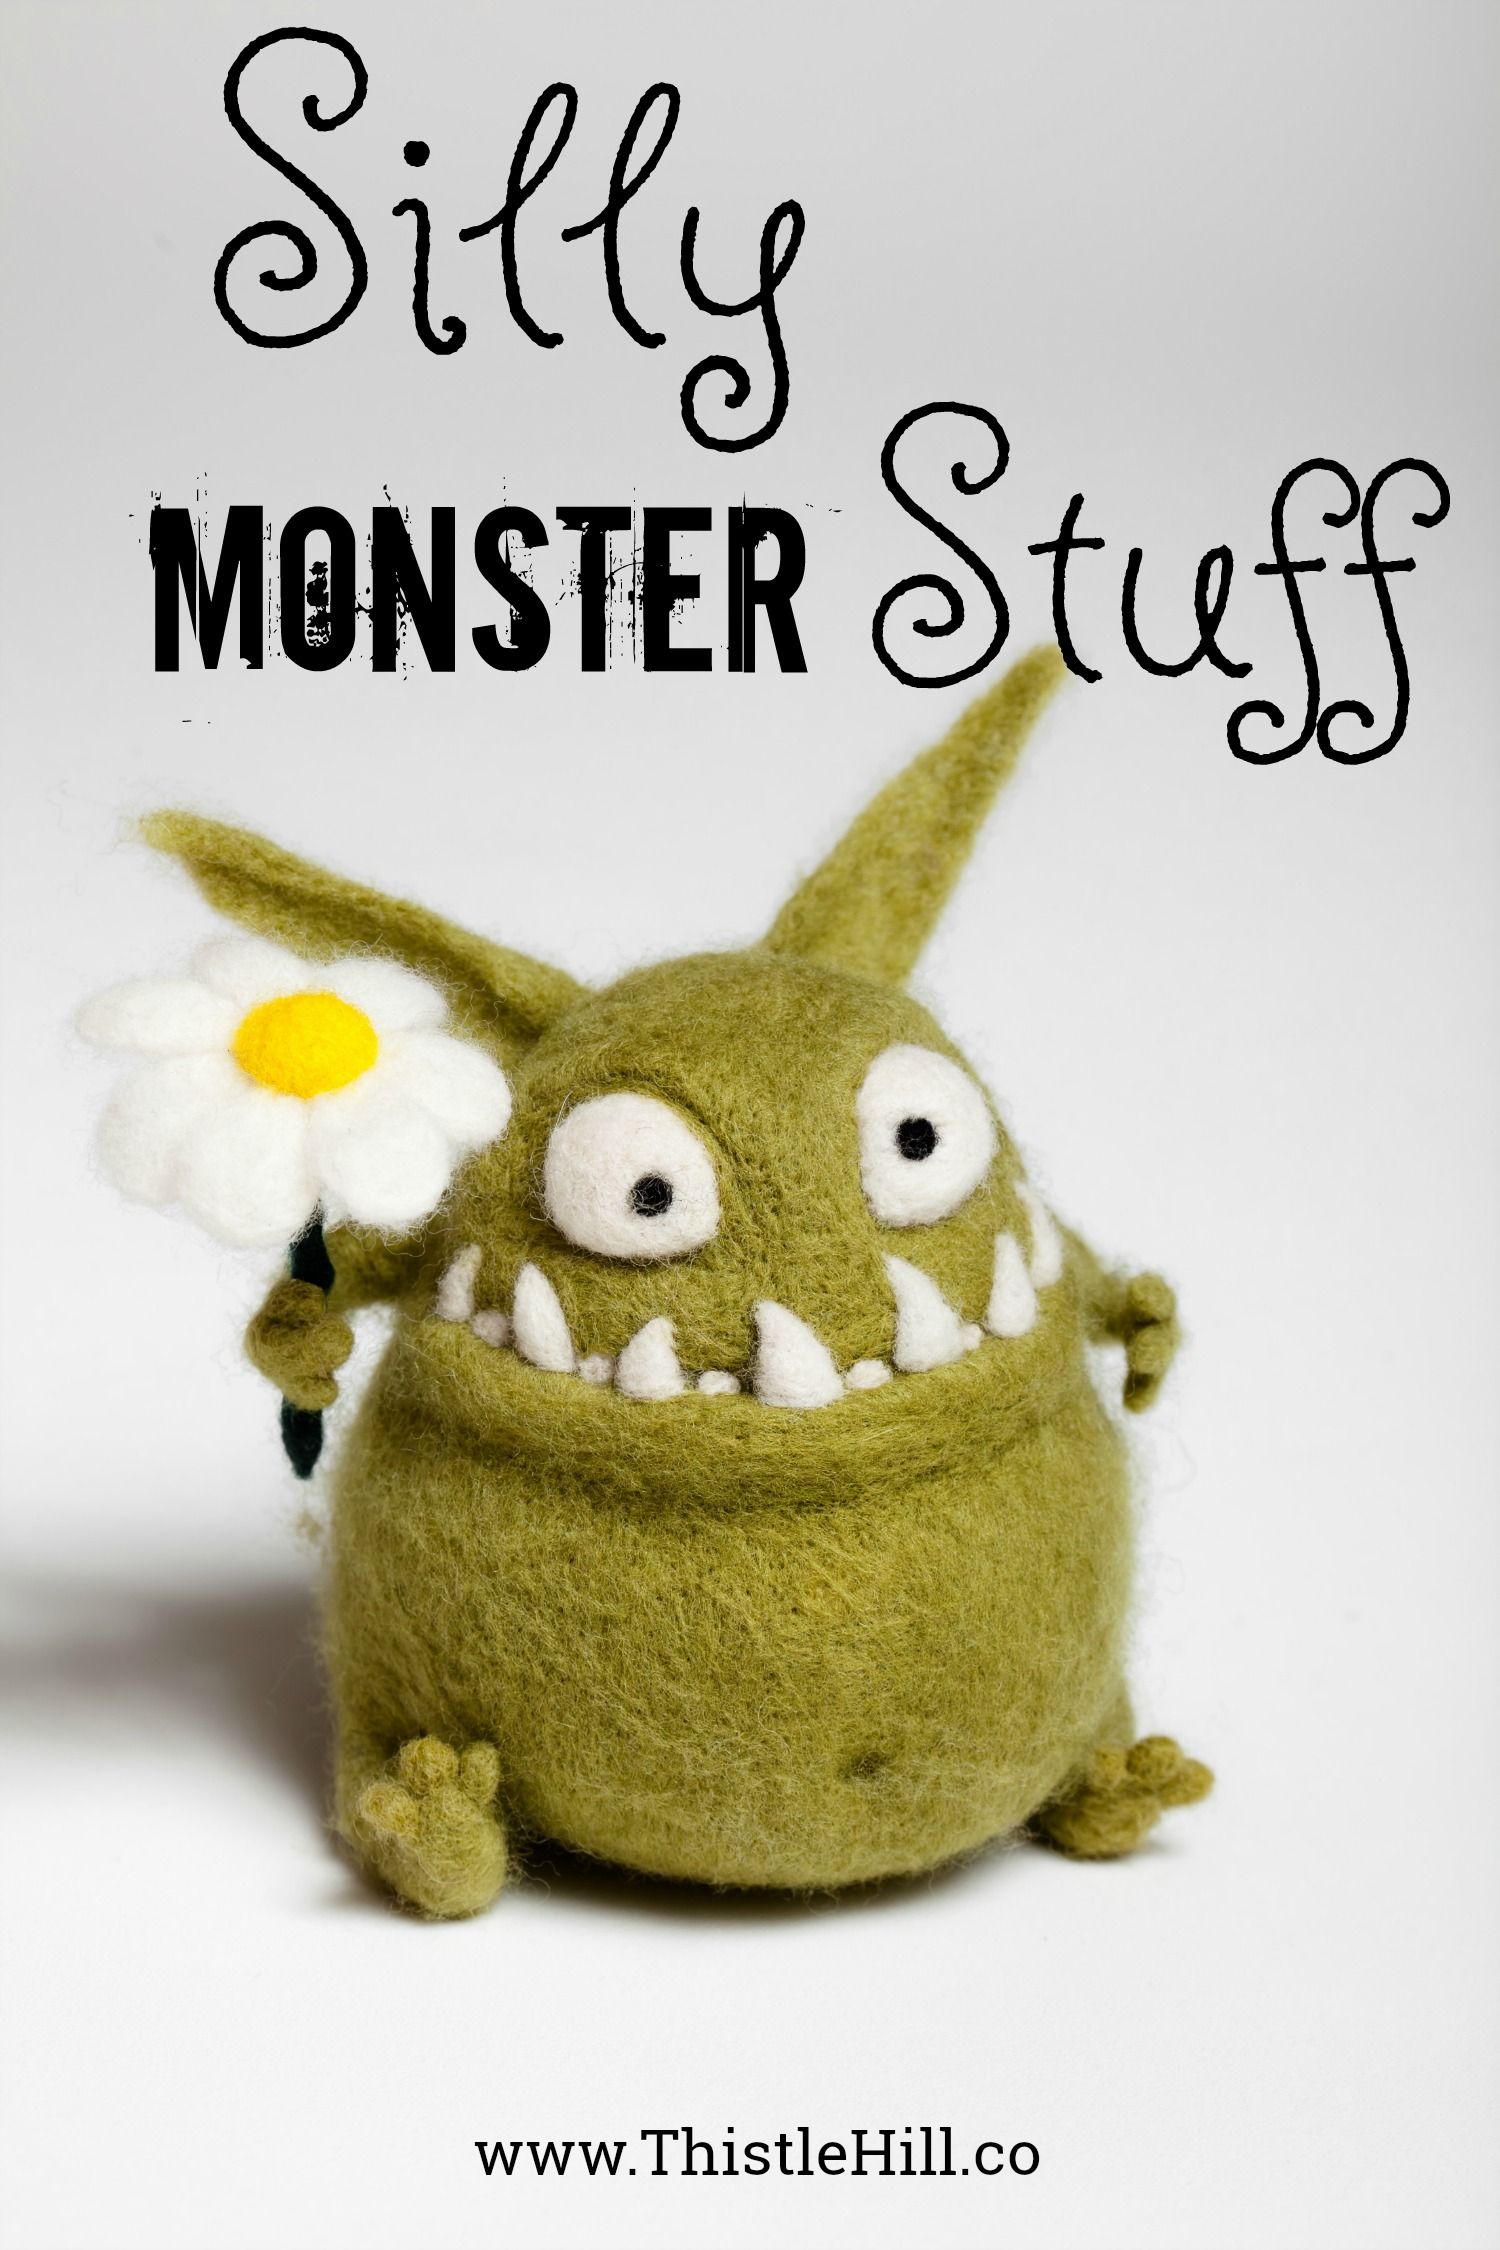 Silly Monster Stuff - Thistle Hill